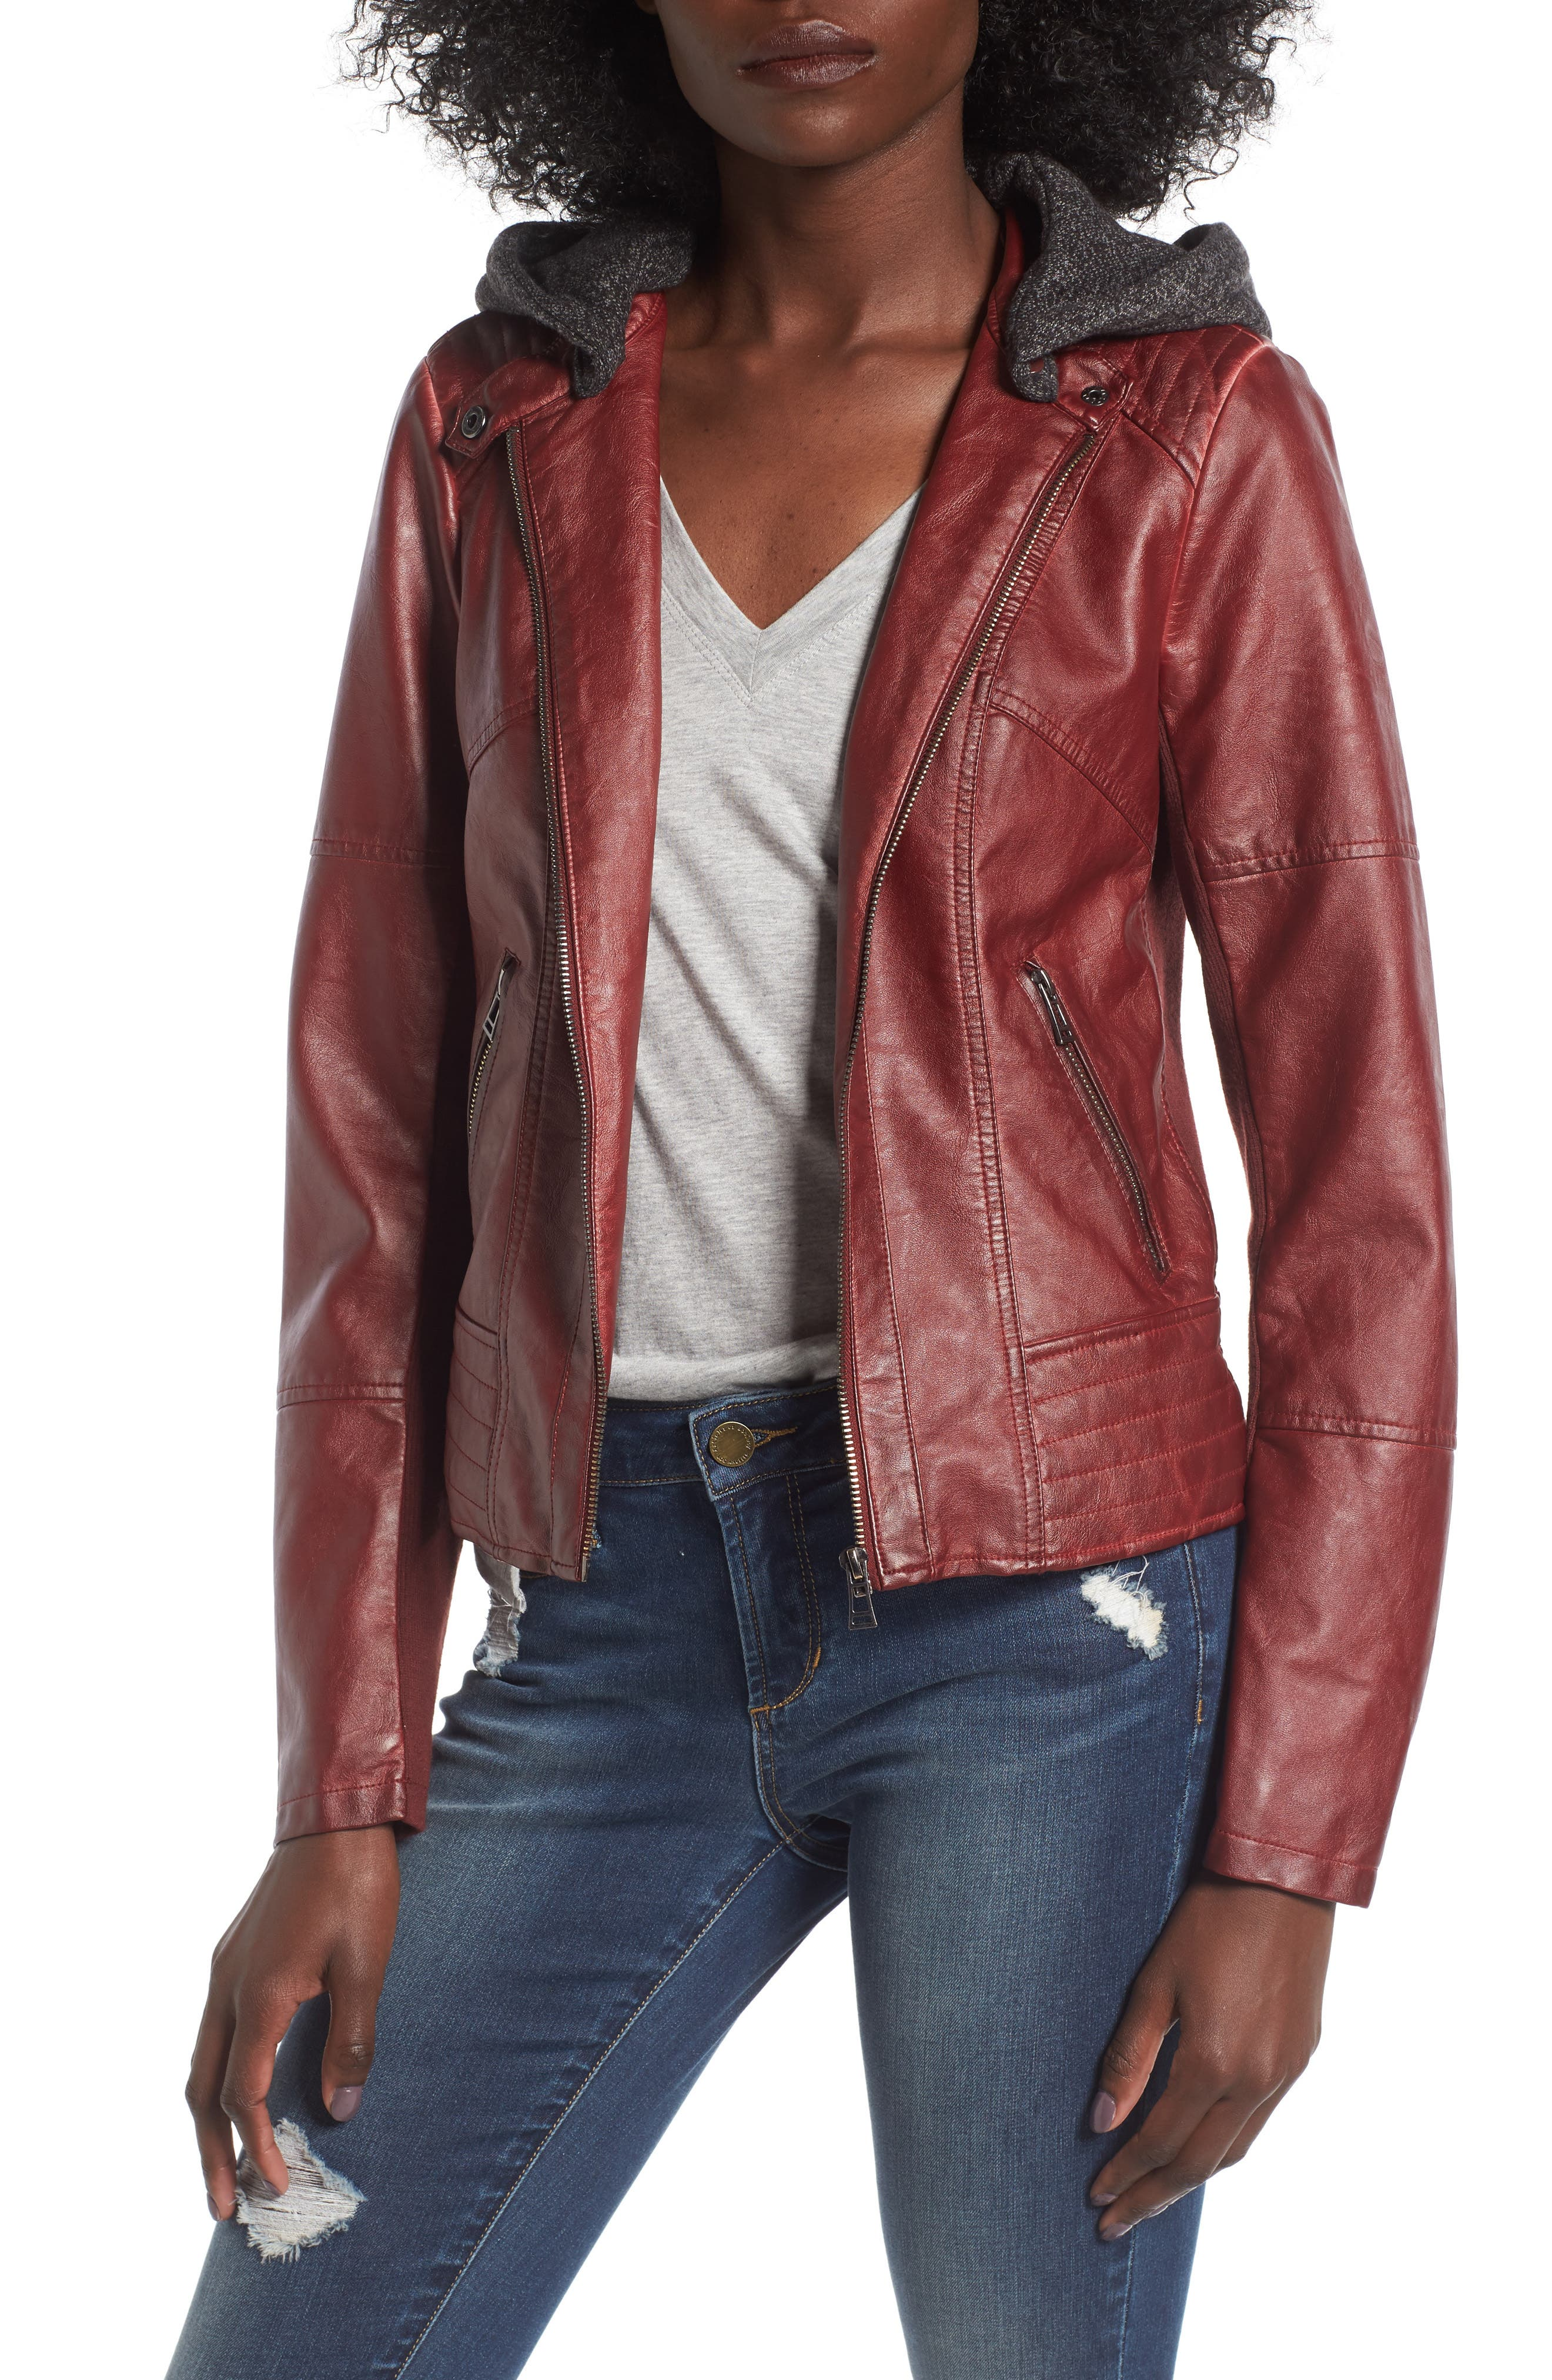 Main Image - SEBBY Faux Leather Jacket with Detachable Jersey Hood